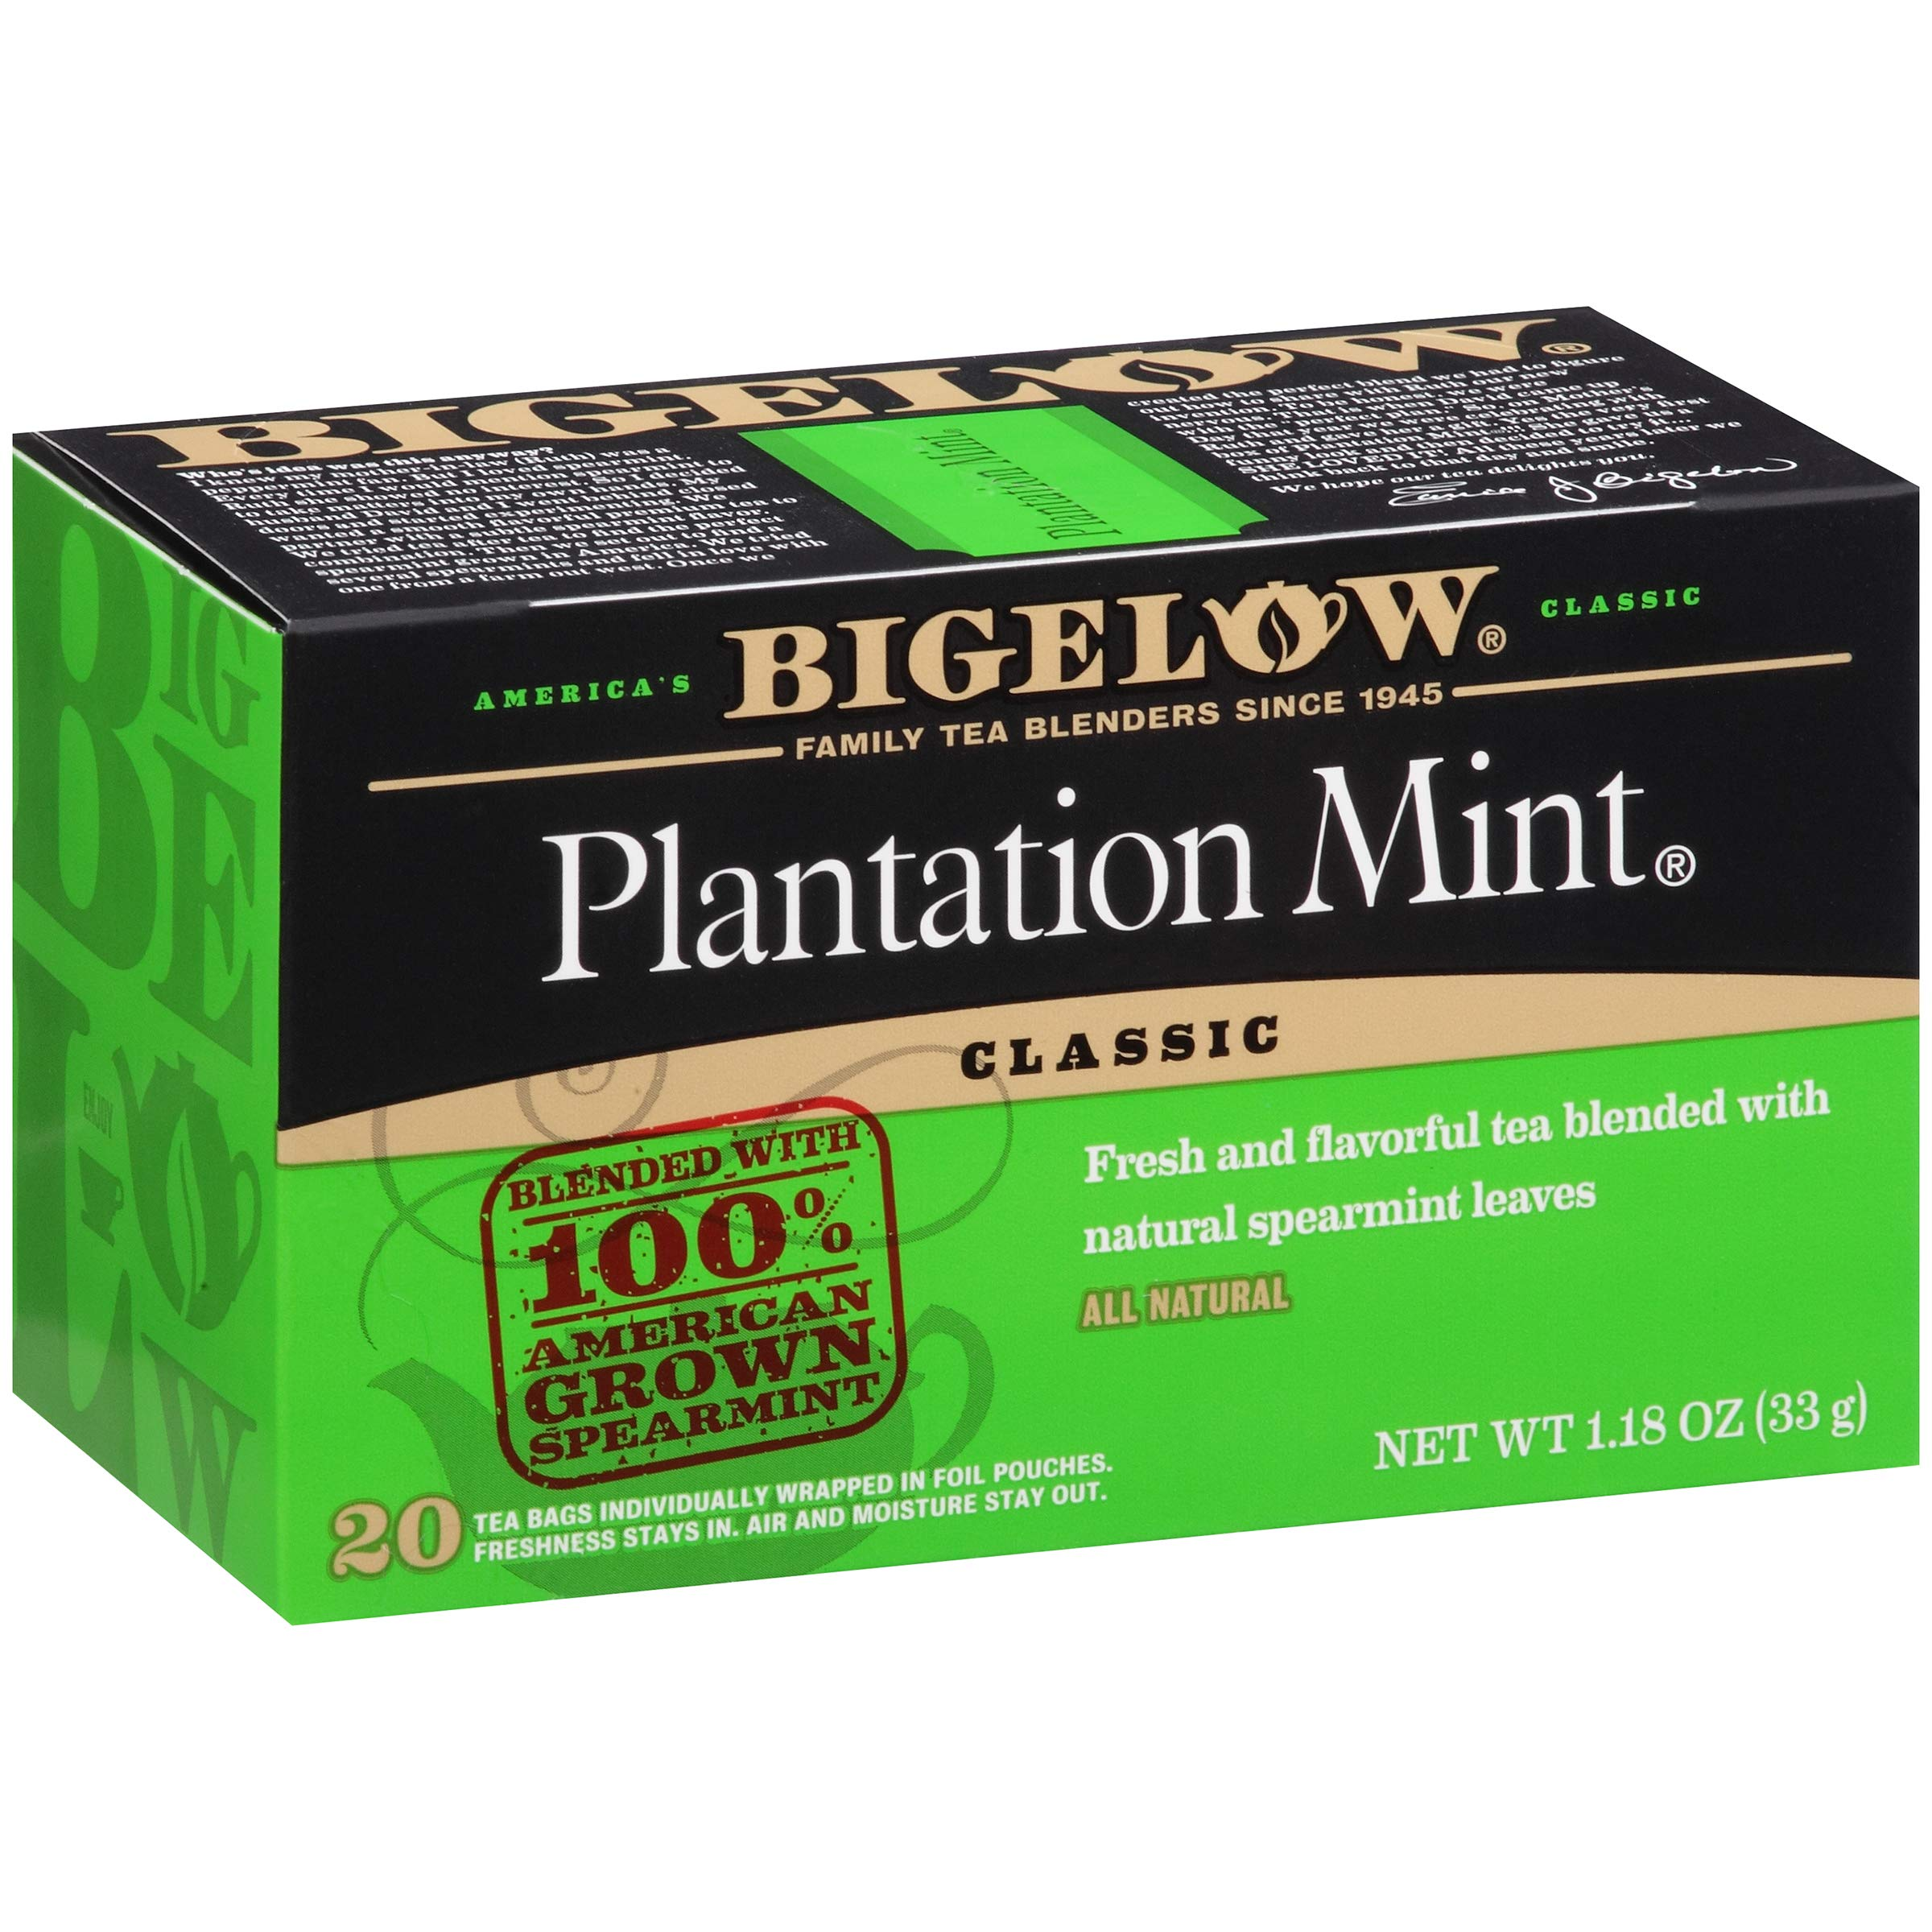 Bigelow Plantation Mint Black Tea Bags 20-Count Boxes (Pack of 6), 120 Tea Bags Total.  Caffeinated Individual Black Tea Bags, for Hot Tea or Iced Tea, Drink Plain or Sweetened with Honey or Sugar by Bigelow Tea